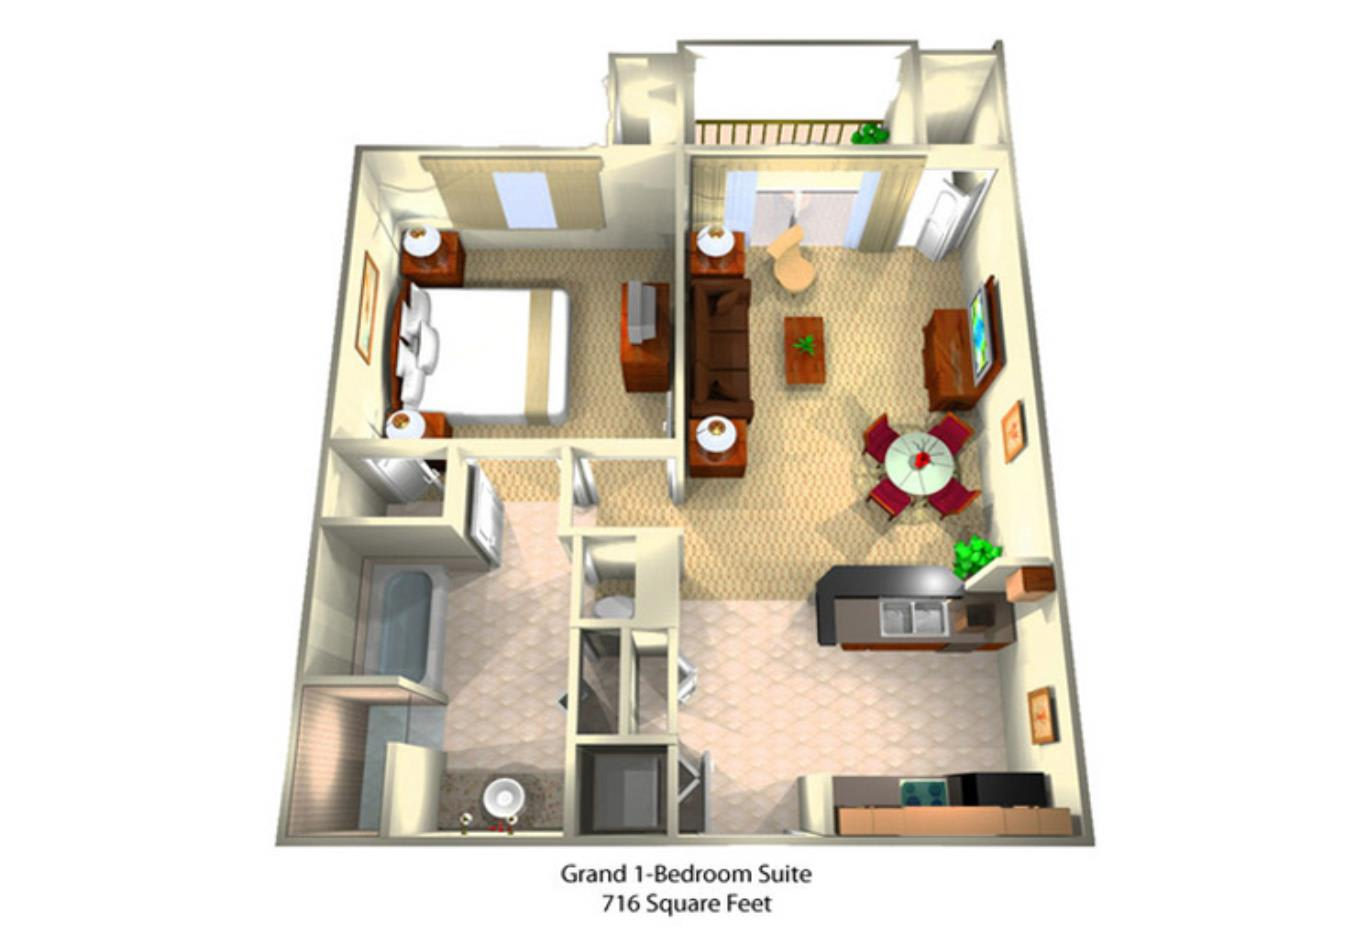 Grand One Bedroom Suite Floorplan